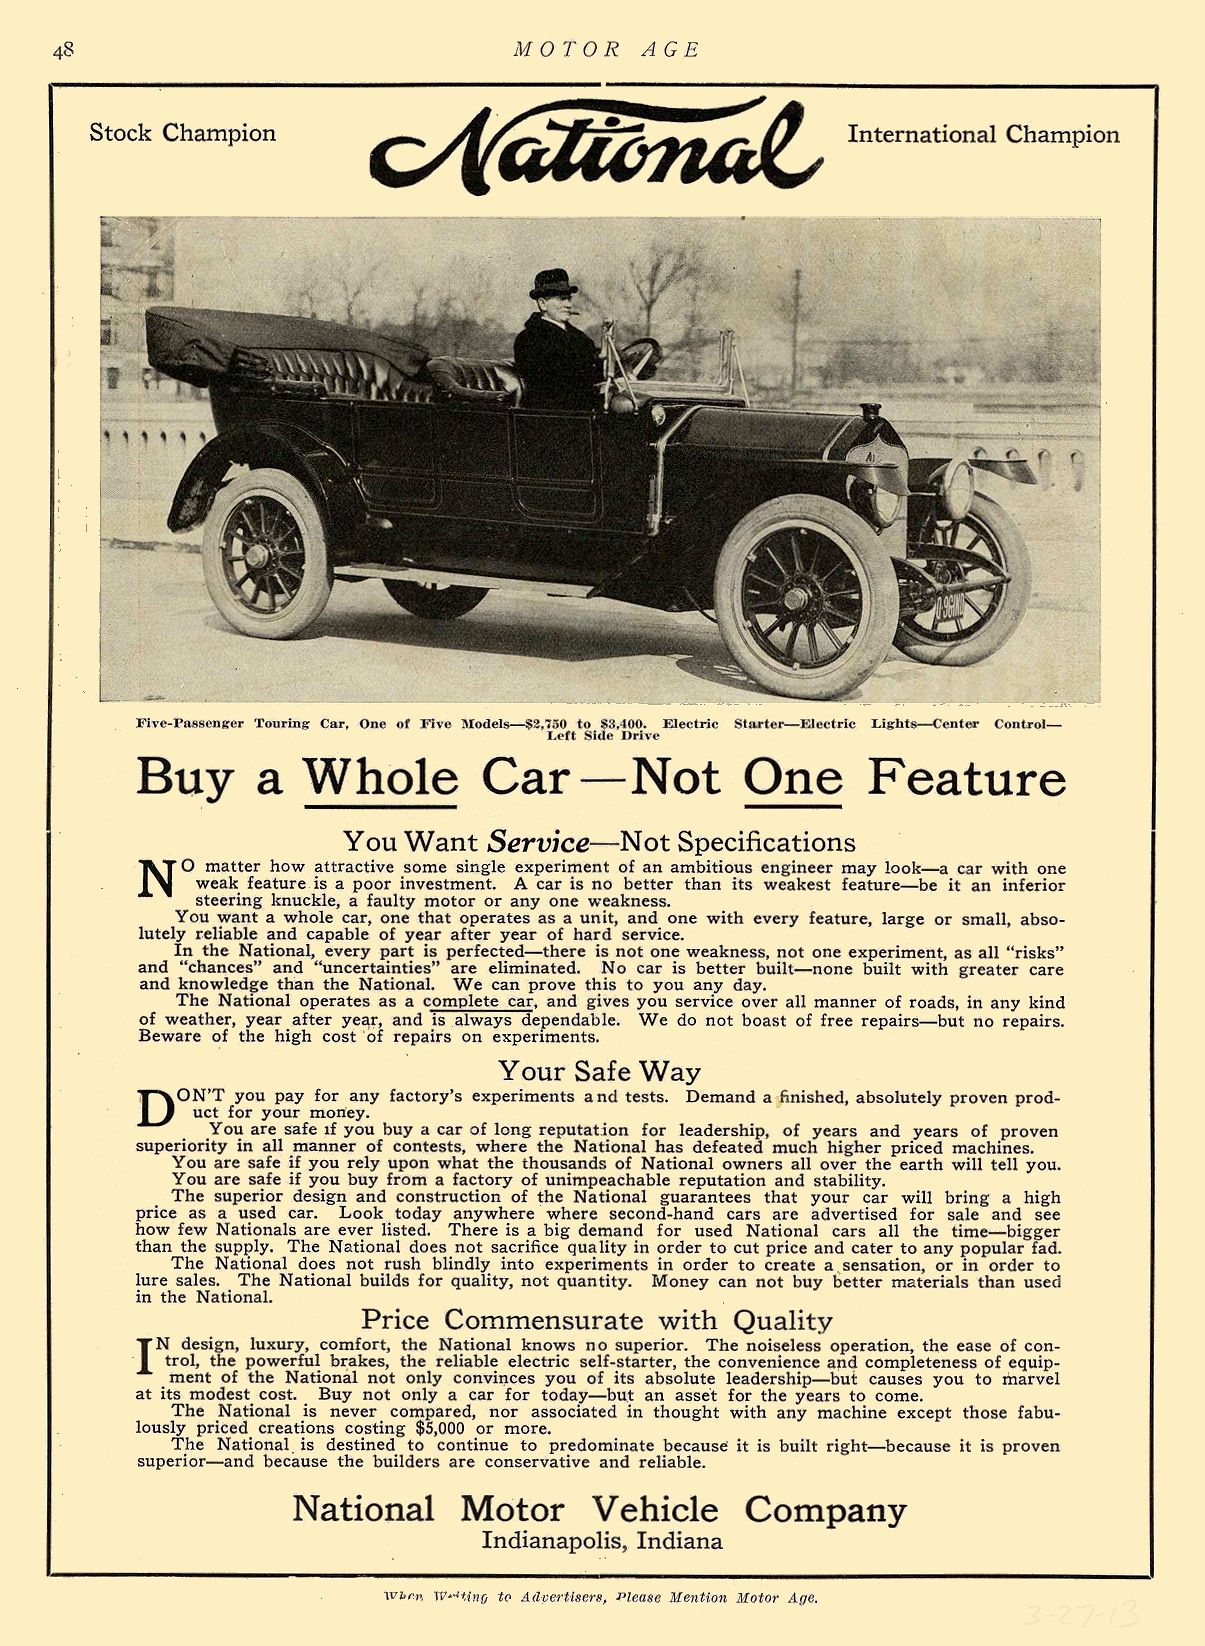 1913 3 27 NATIONAL National Buy a Whole Car—Not One Feature National Motor Vehicle Company Indianapolis, IND MOTOR AGE March 27, 1913 8.5″x12″ page 48